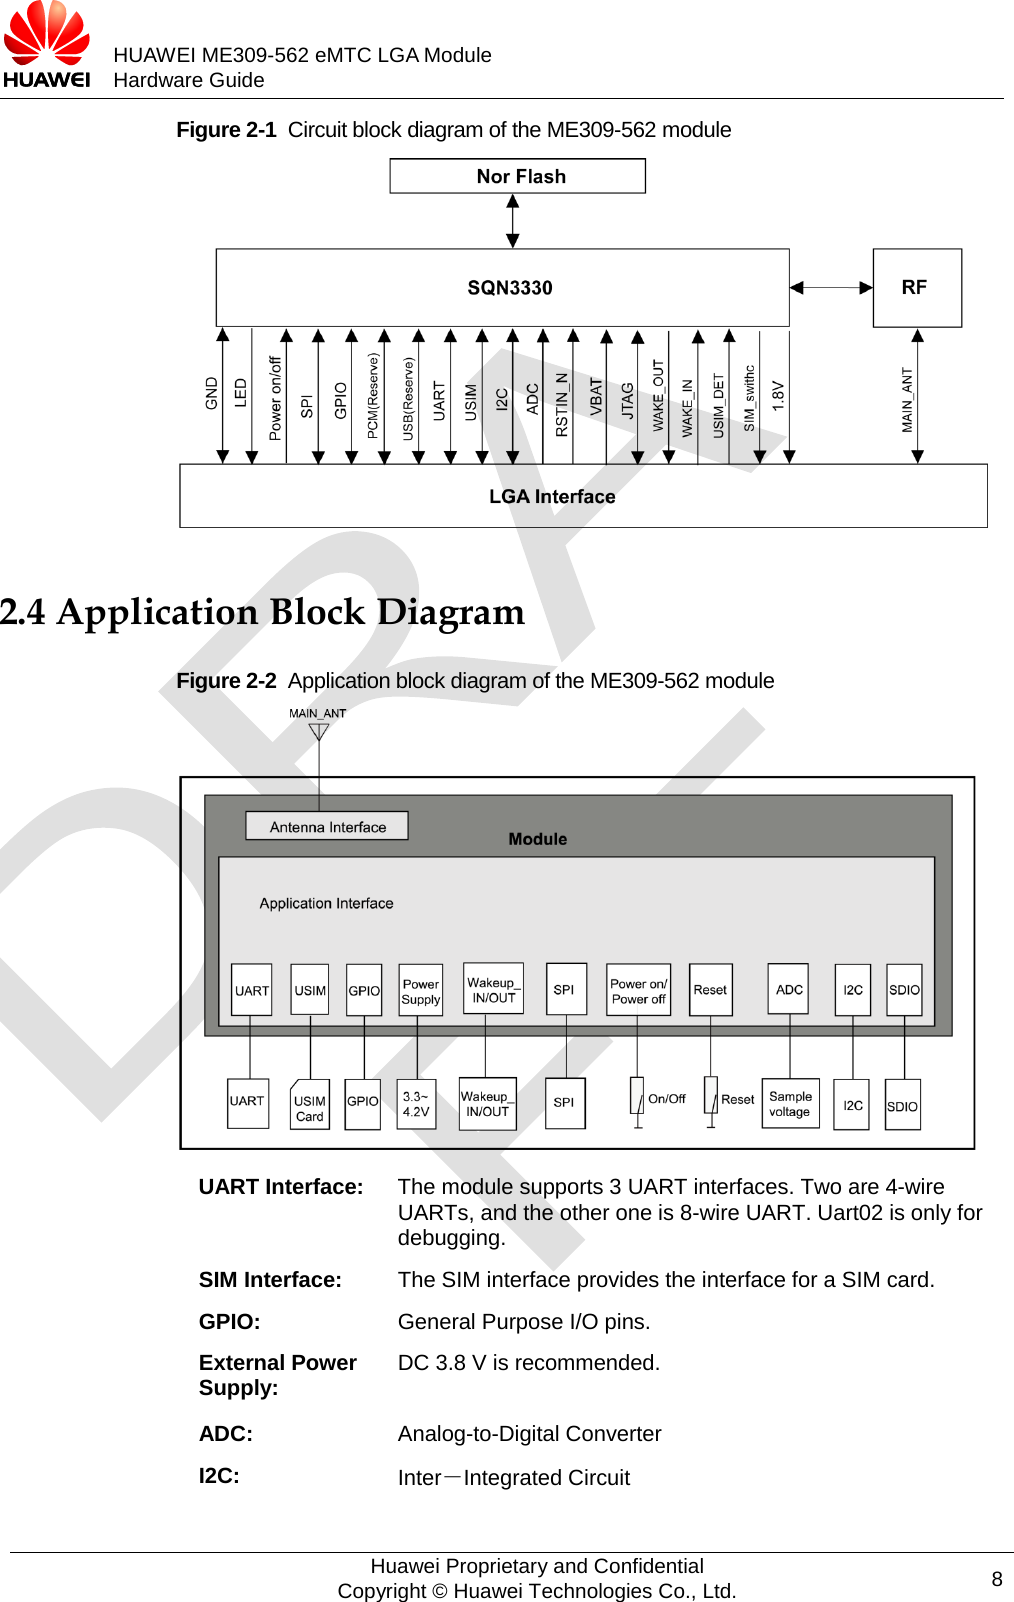 HUAWEI ME309-562 eMTC LGA Module Hardware Guide  Figure 2-1  Circuit block diagram of the ME309-562 module    2.4 Application Block Diagram Figure 2-2  Application block diagram of the ME309-562 module  UART Interface:  The module supports 3 UART interfaces. Two are 4-wire UARTs, and the other one is 8-wire UART. Uart02 is only for debugging. SIM Interface:  The SIM interface provides the interface for a SIM card. GPIO:  General Purpose I/O pins. External Power Supply: DC 3.8 V is recommended. ADC: Analog-to-Digital Converter I2C: Inter-Integrated Circuit  Huawei Proprietary and Confidential Copyright © Huawei Technologies Co., Ltd. 8